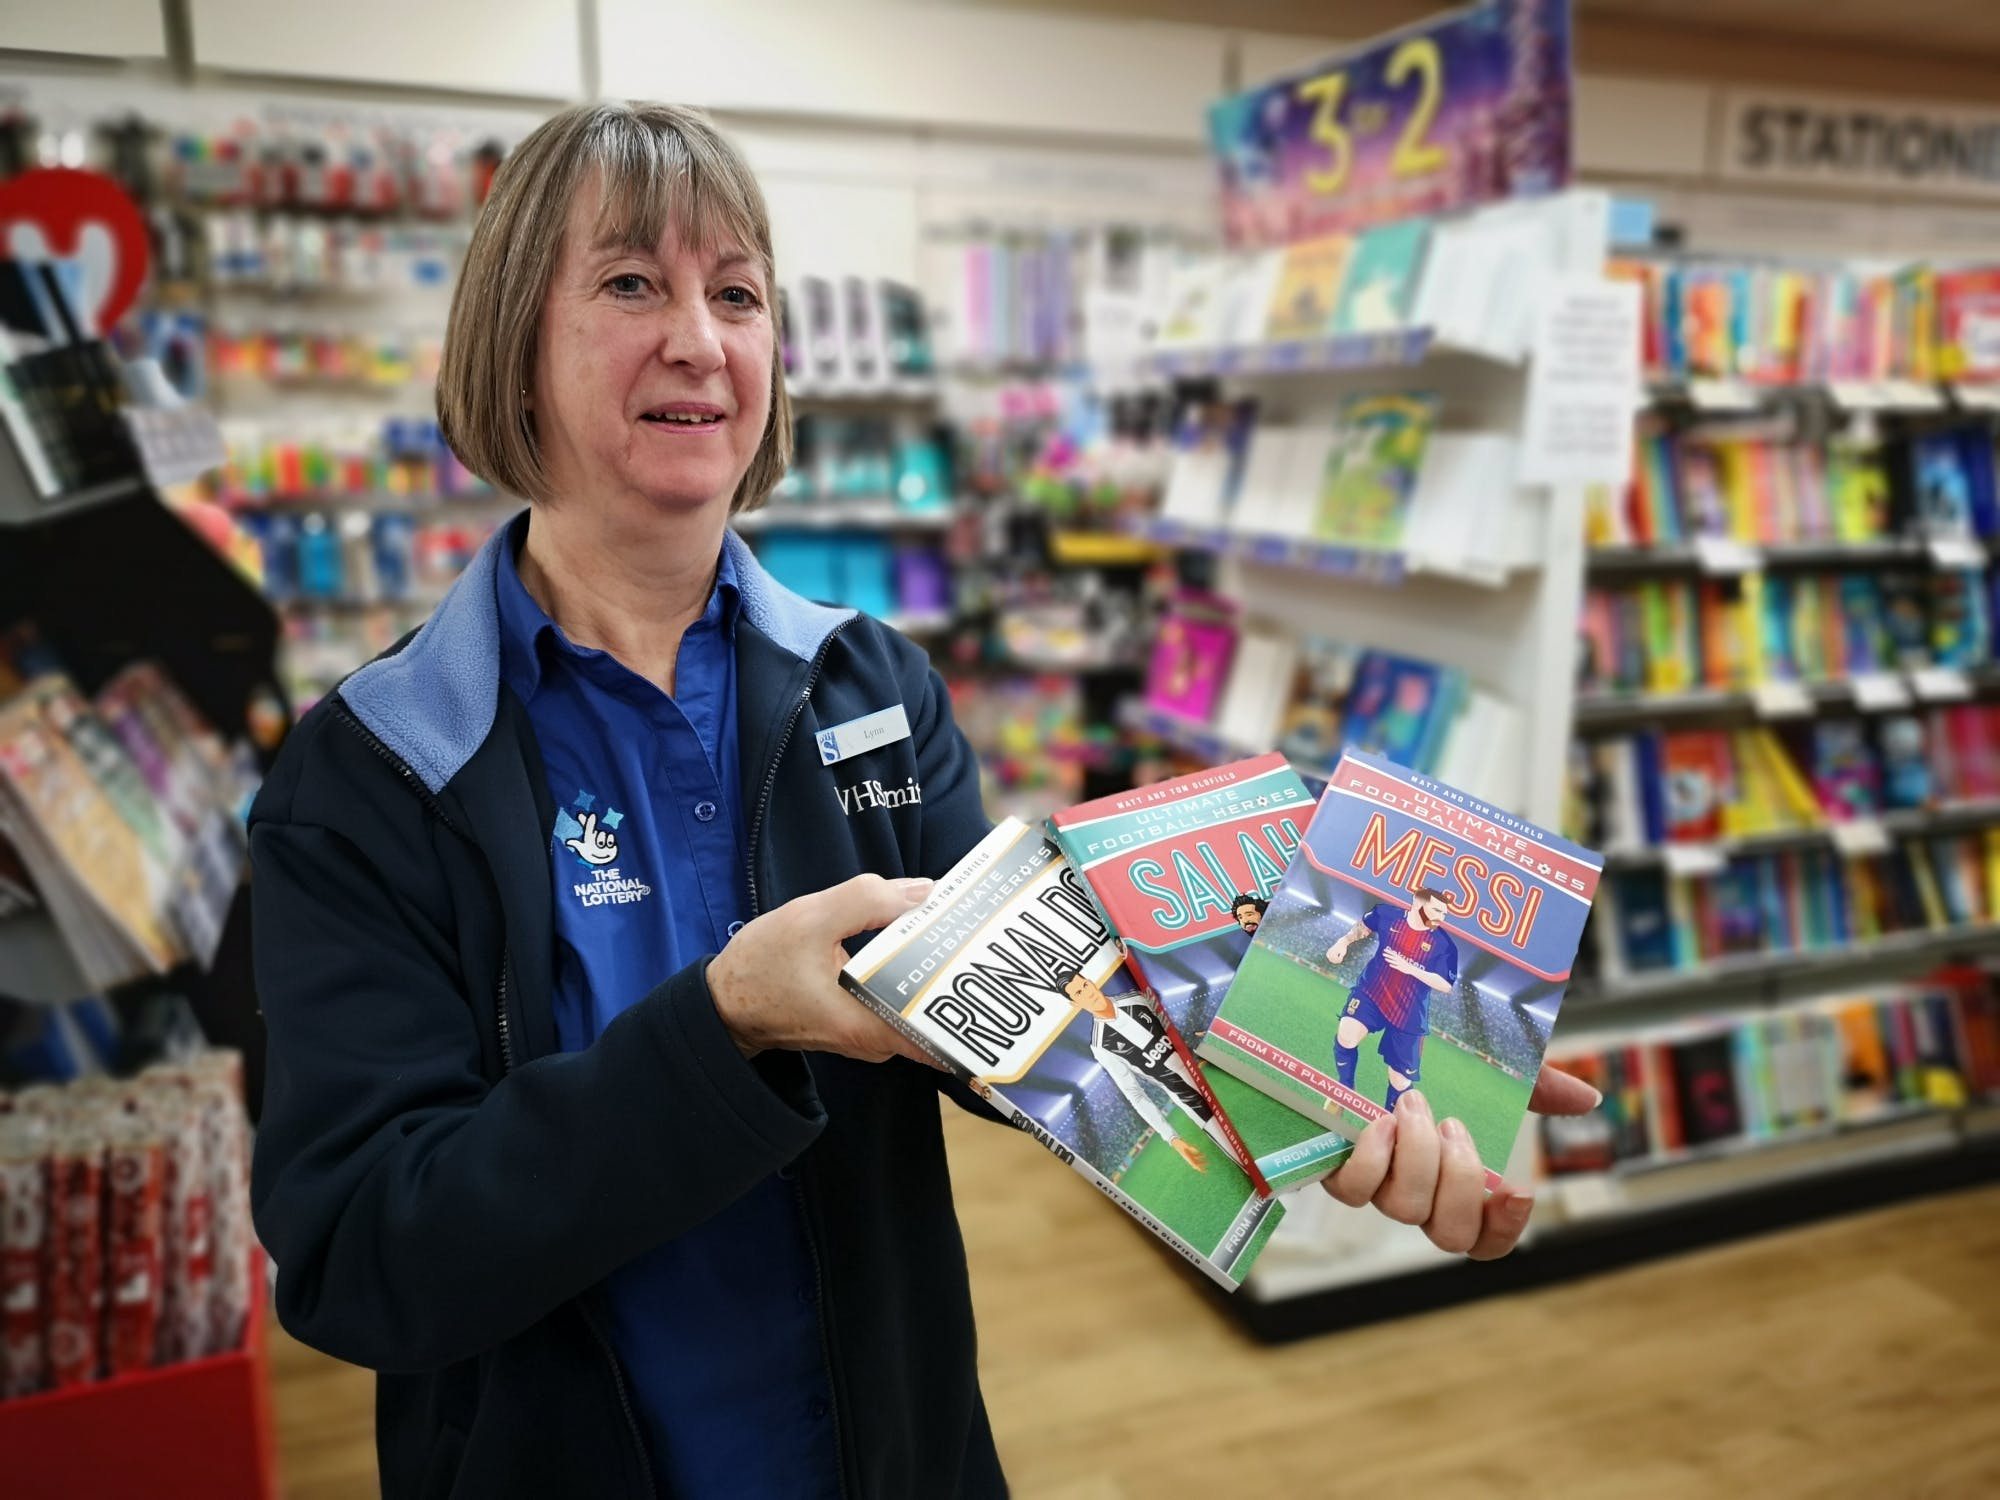 WH Smith hat-trick of mega footy star books on 3-for-2